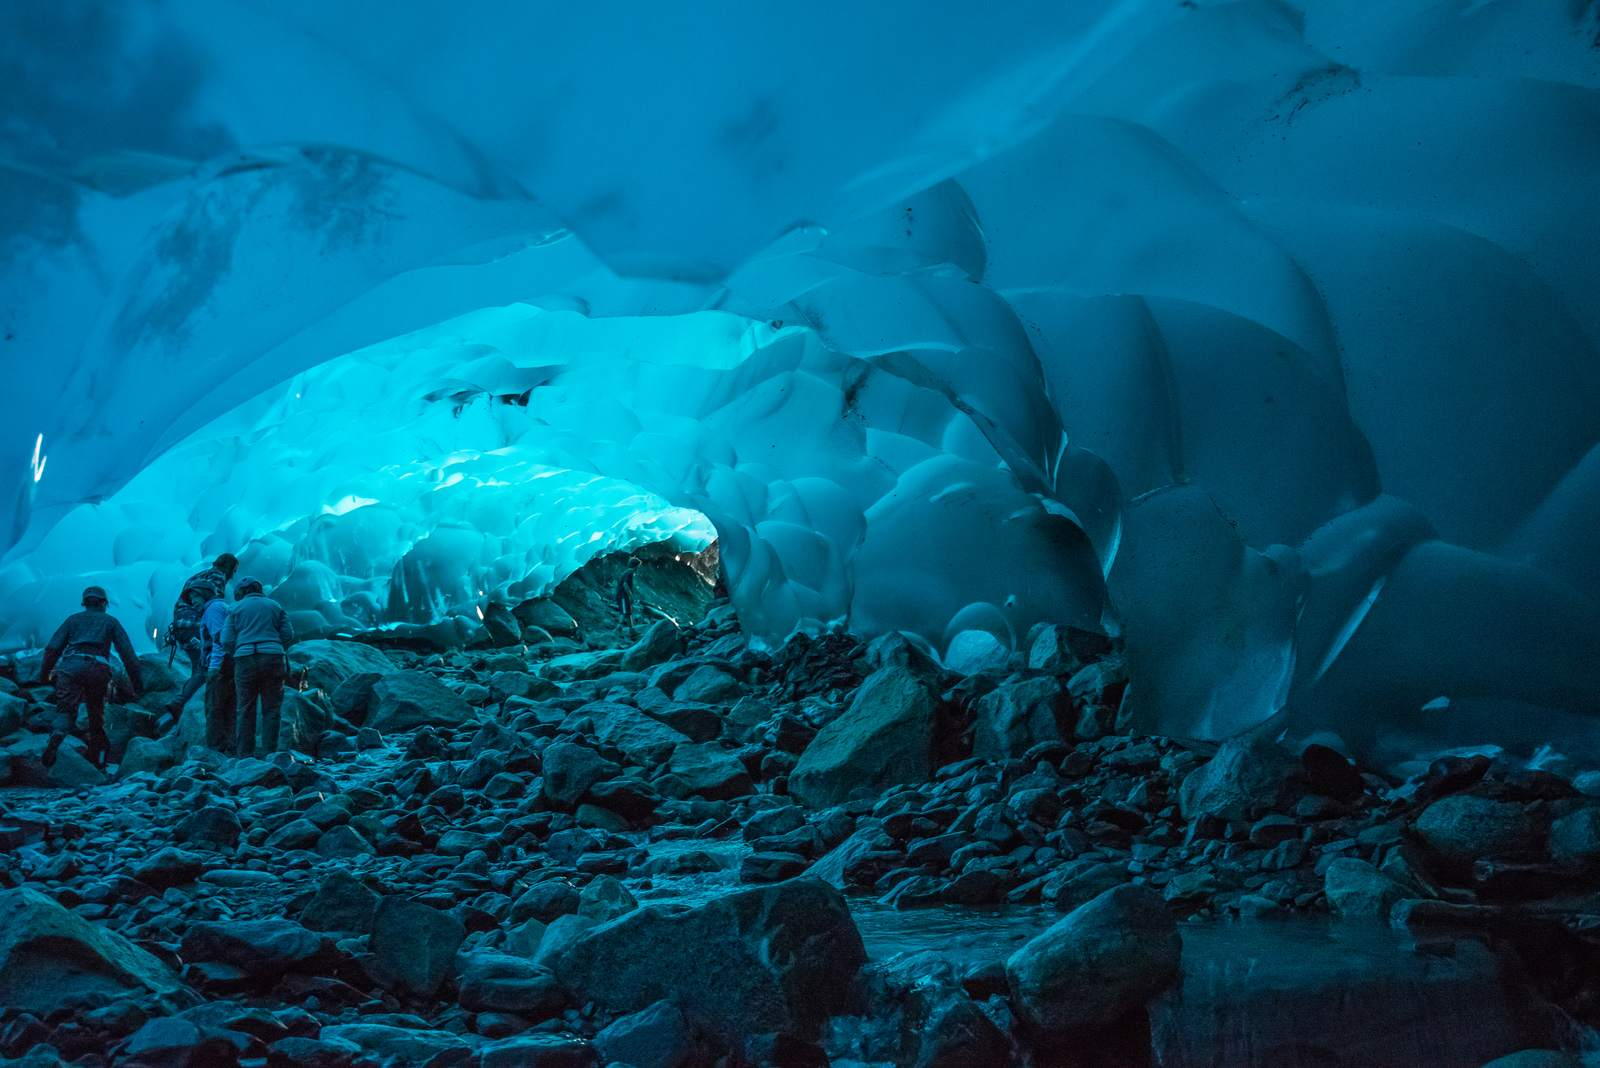 mendenhall3 Ice Caves under the Mendenhall Glacier in Juneau, Alaska